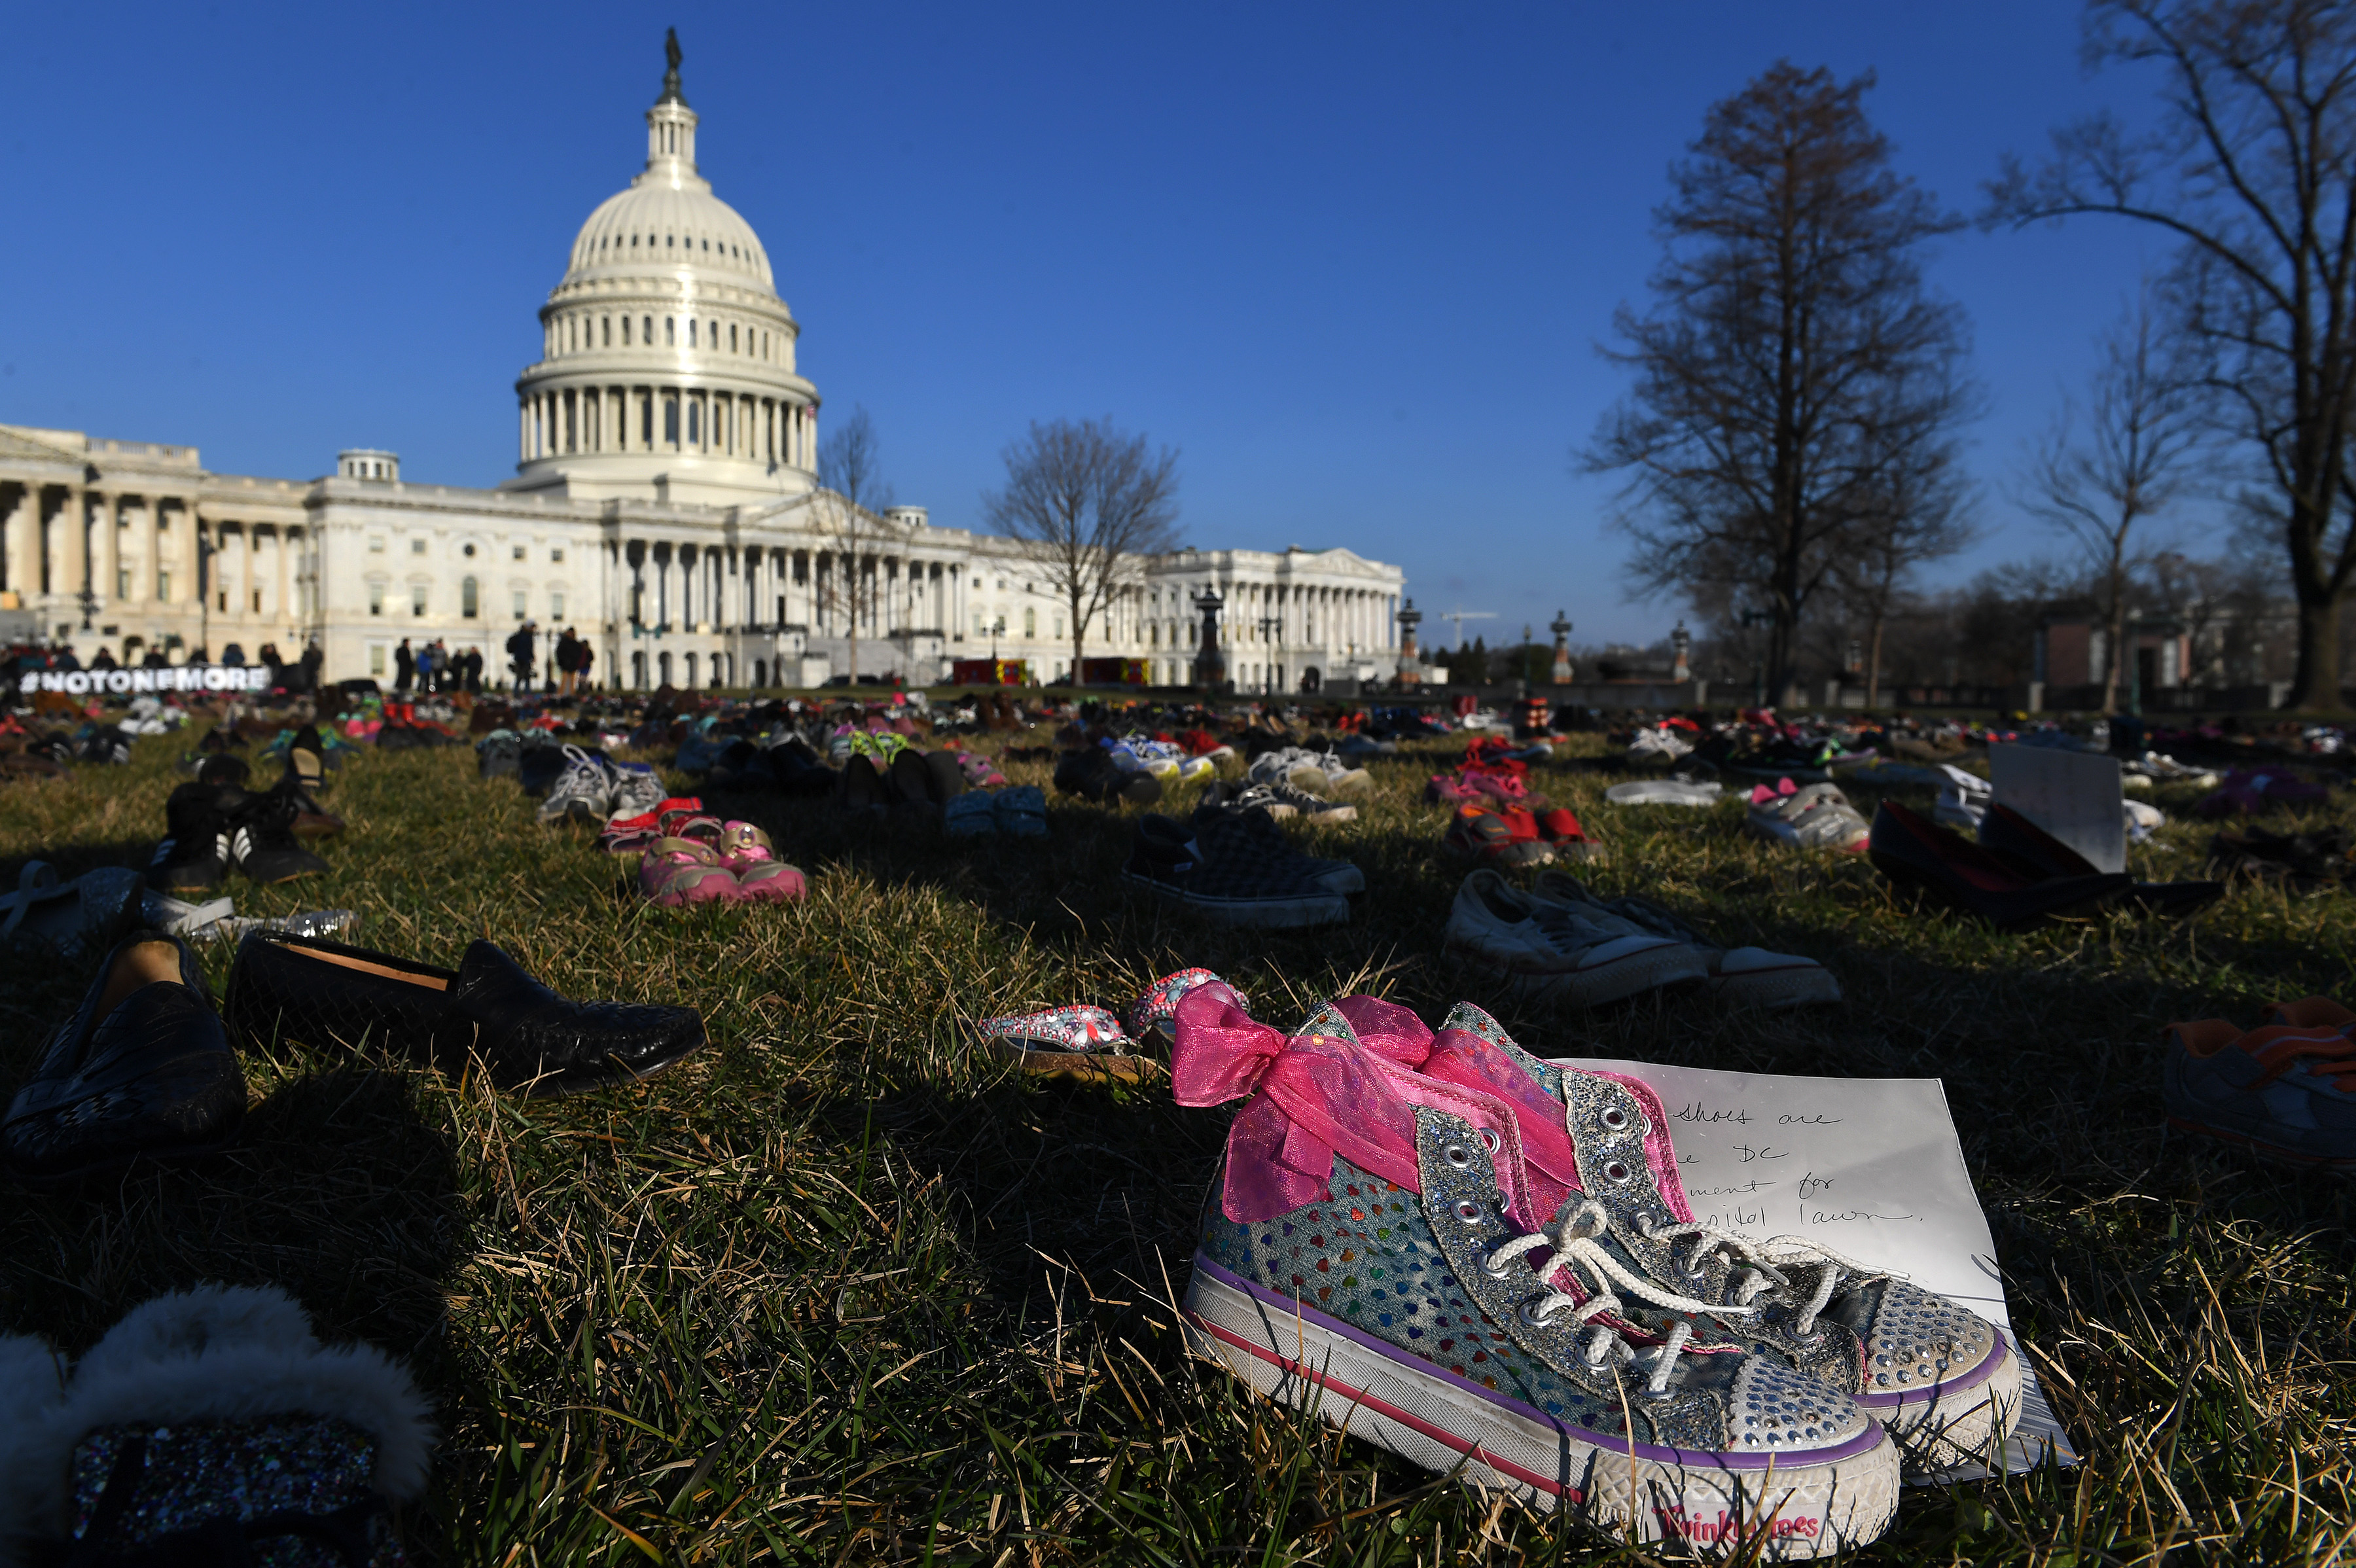 To commemorate child victims of gun violence, 7,000 shoes were left at the US Capitol.